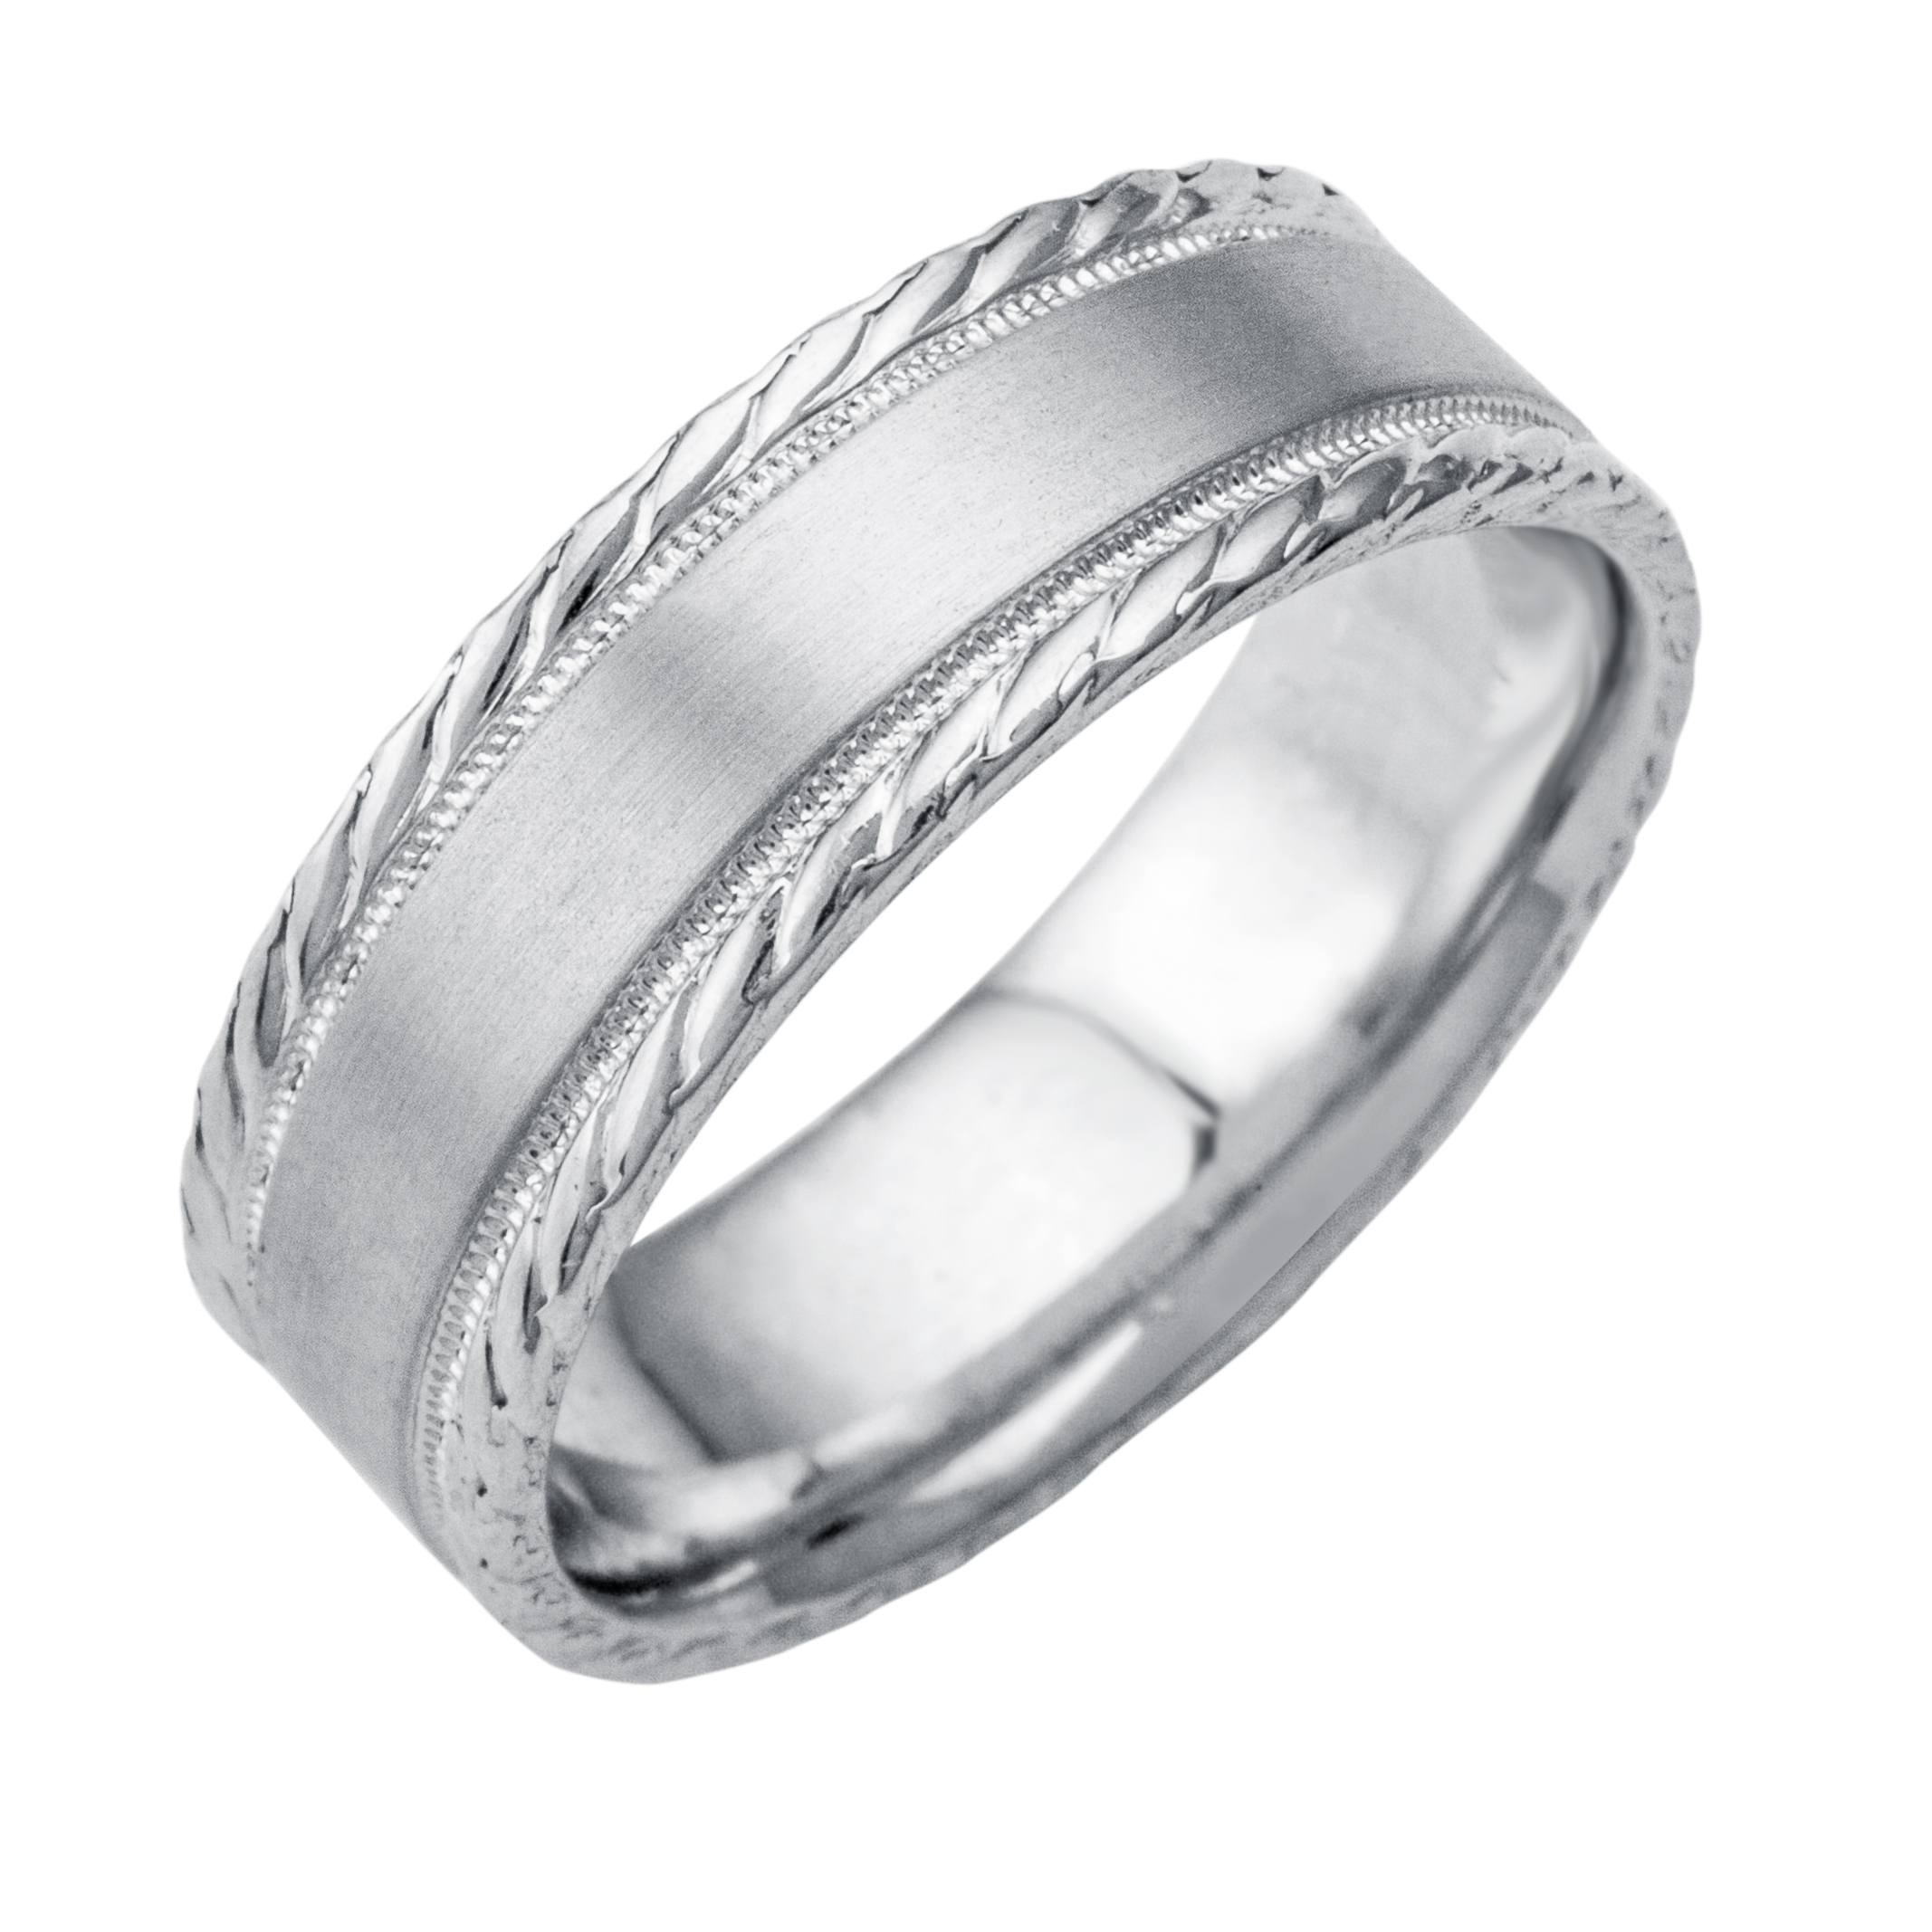 14K18K White Or Yellow Gold Rope And Milgrain Design Mens Wedding